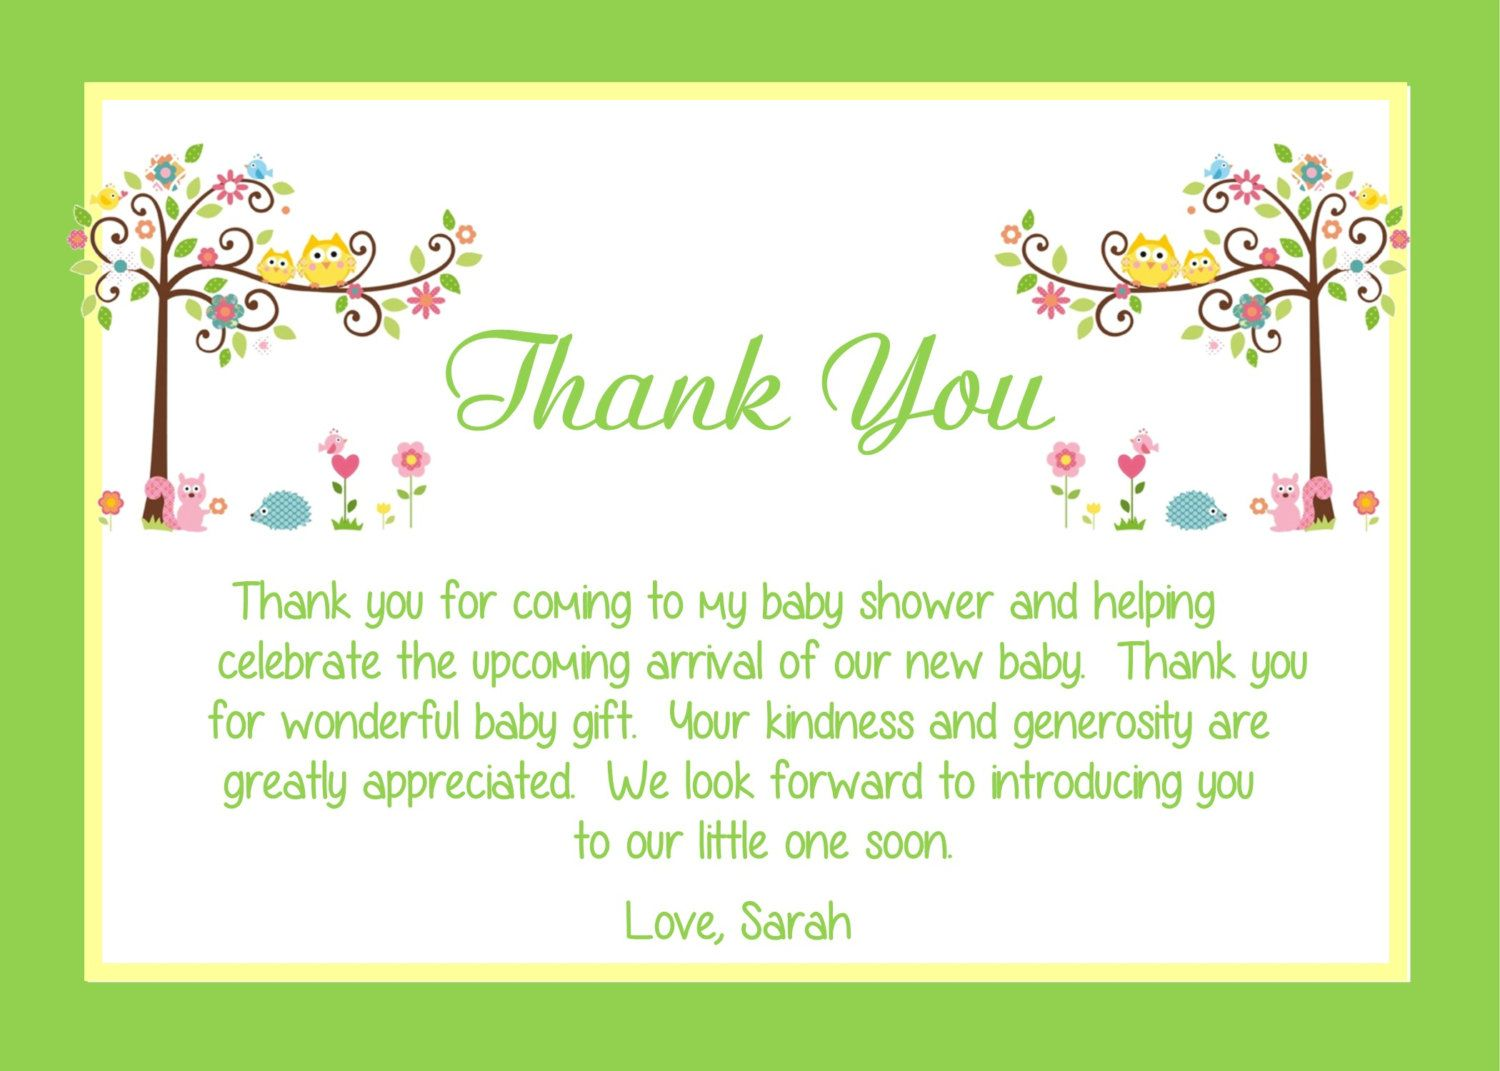 baby shower thank you notes examples thank you letter 2017 thank you letter 2017 1000